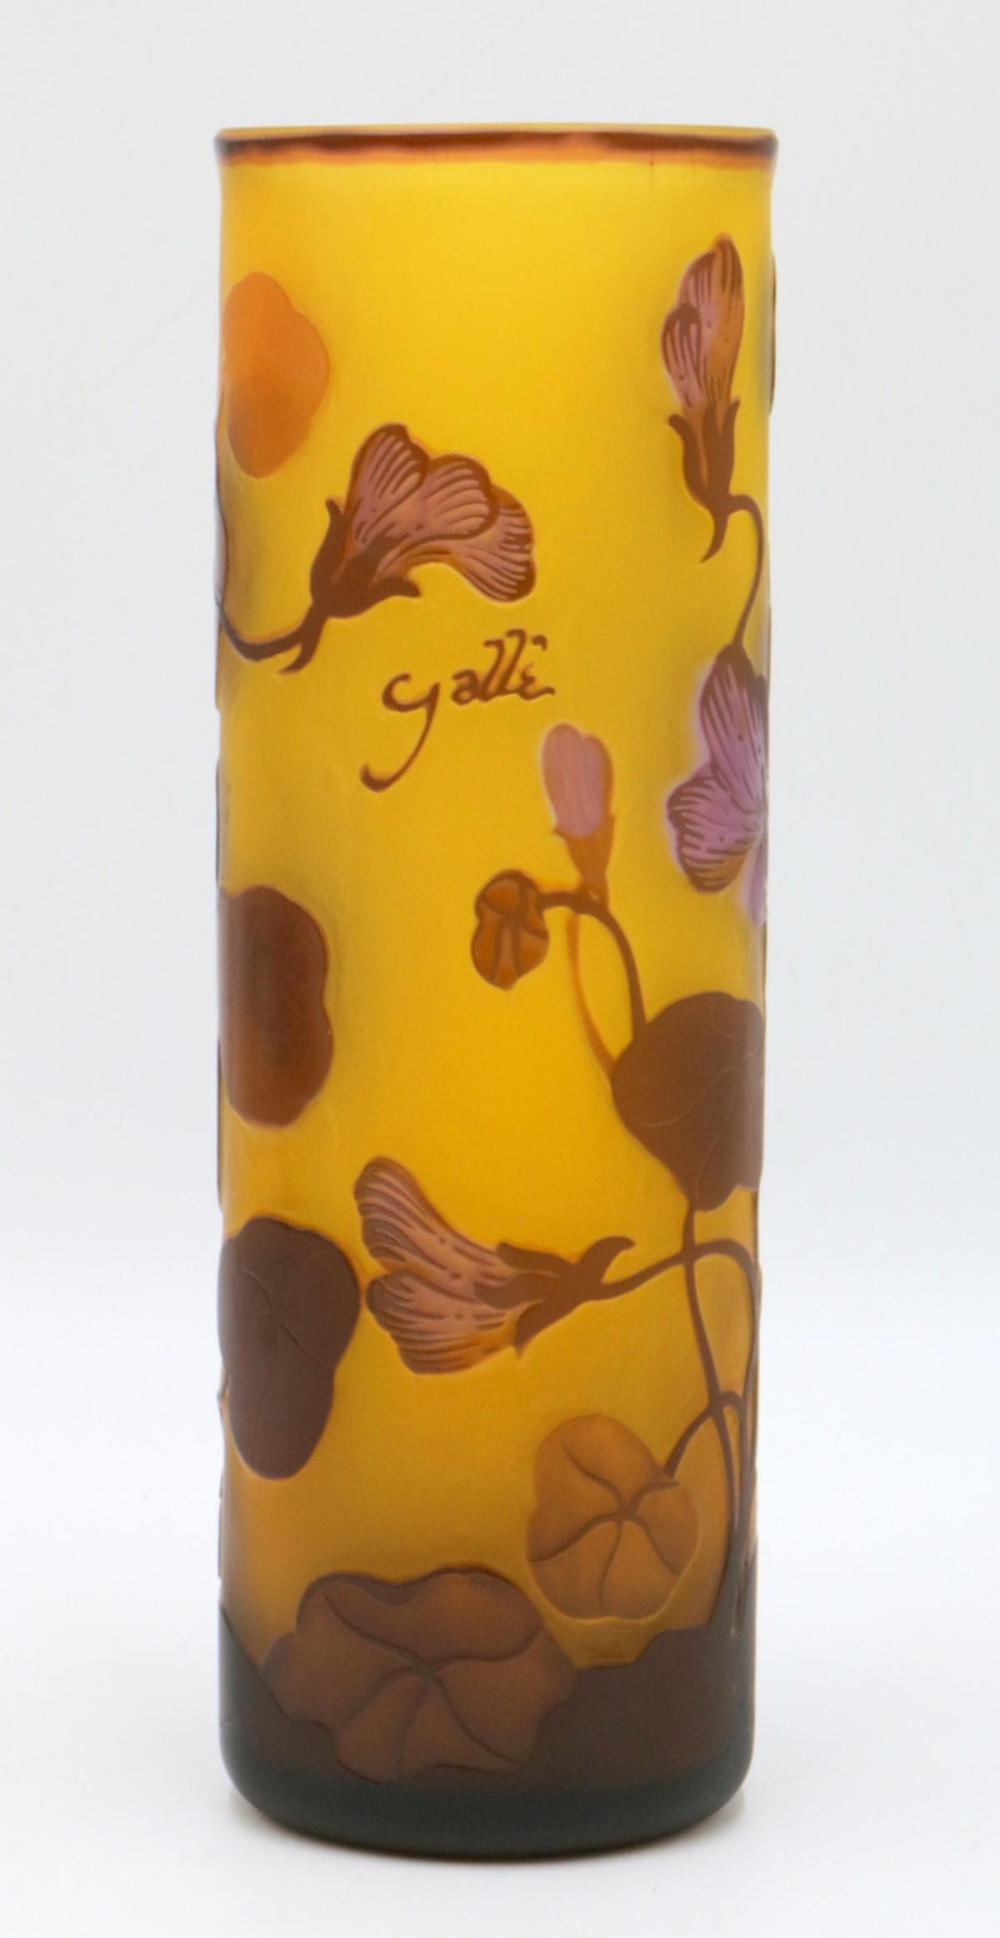 After Galle Cameo Art Glass Vase